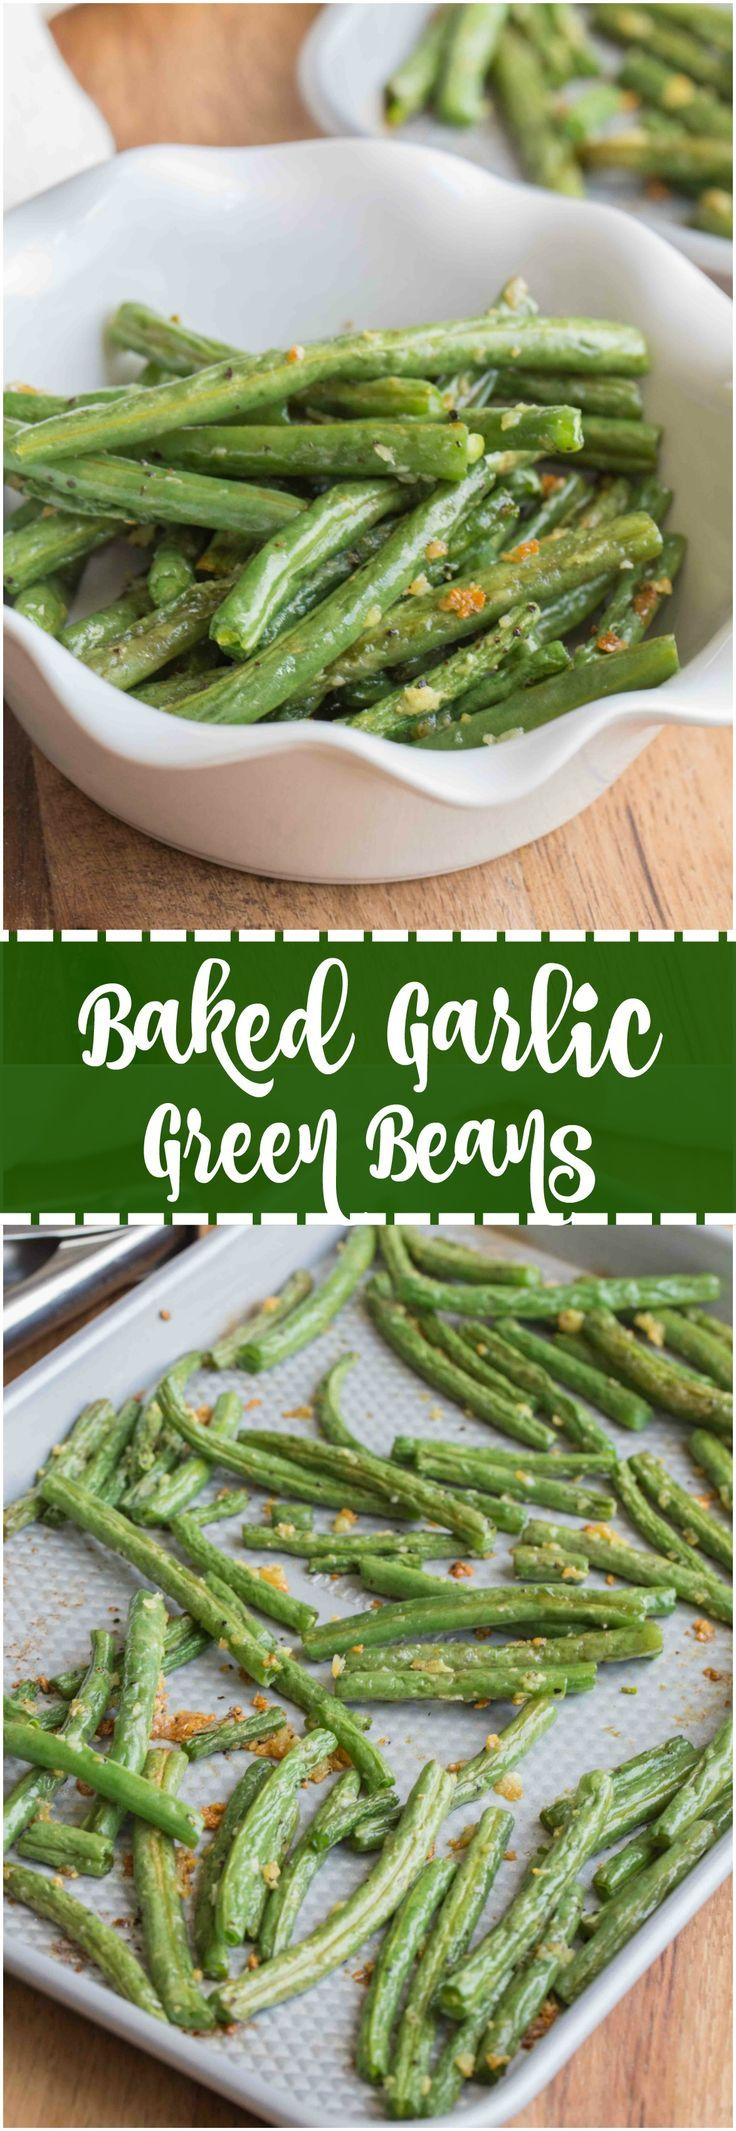 Baked Garlic Green Beans are a simple and delicious side dish that will compliment